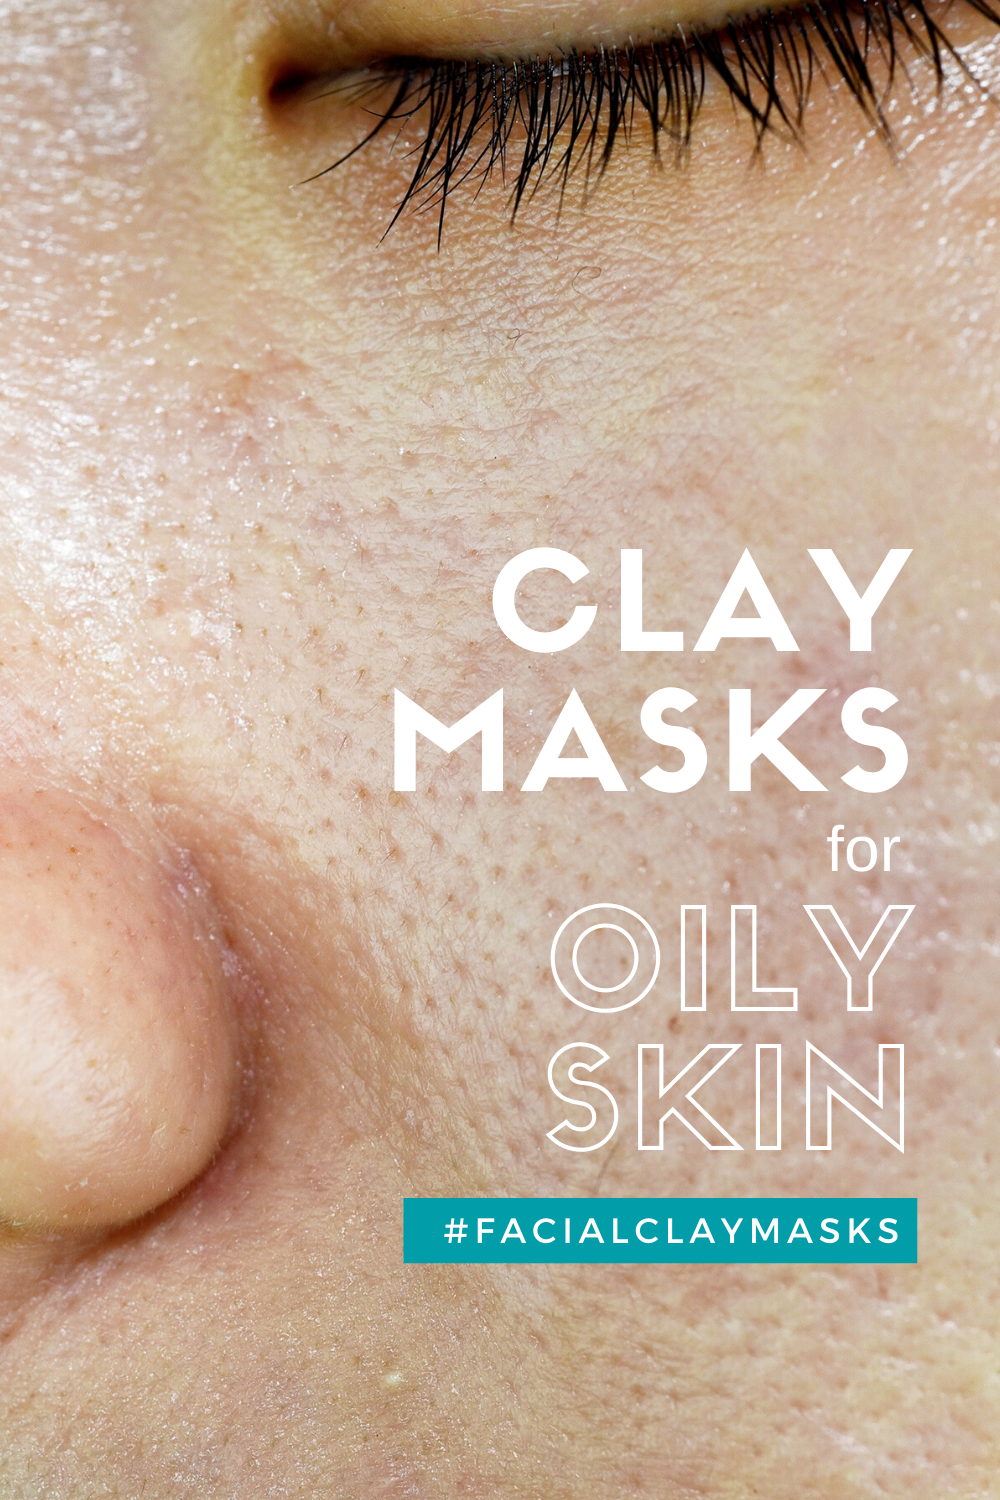 Should you Use a Clay Mask for Oily Skin? 1